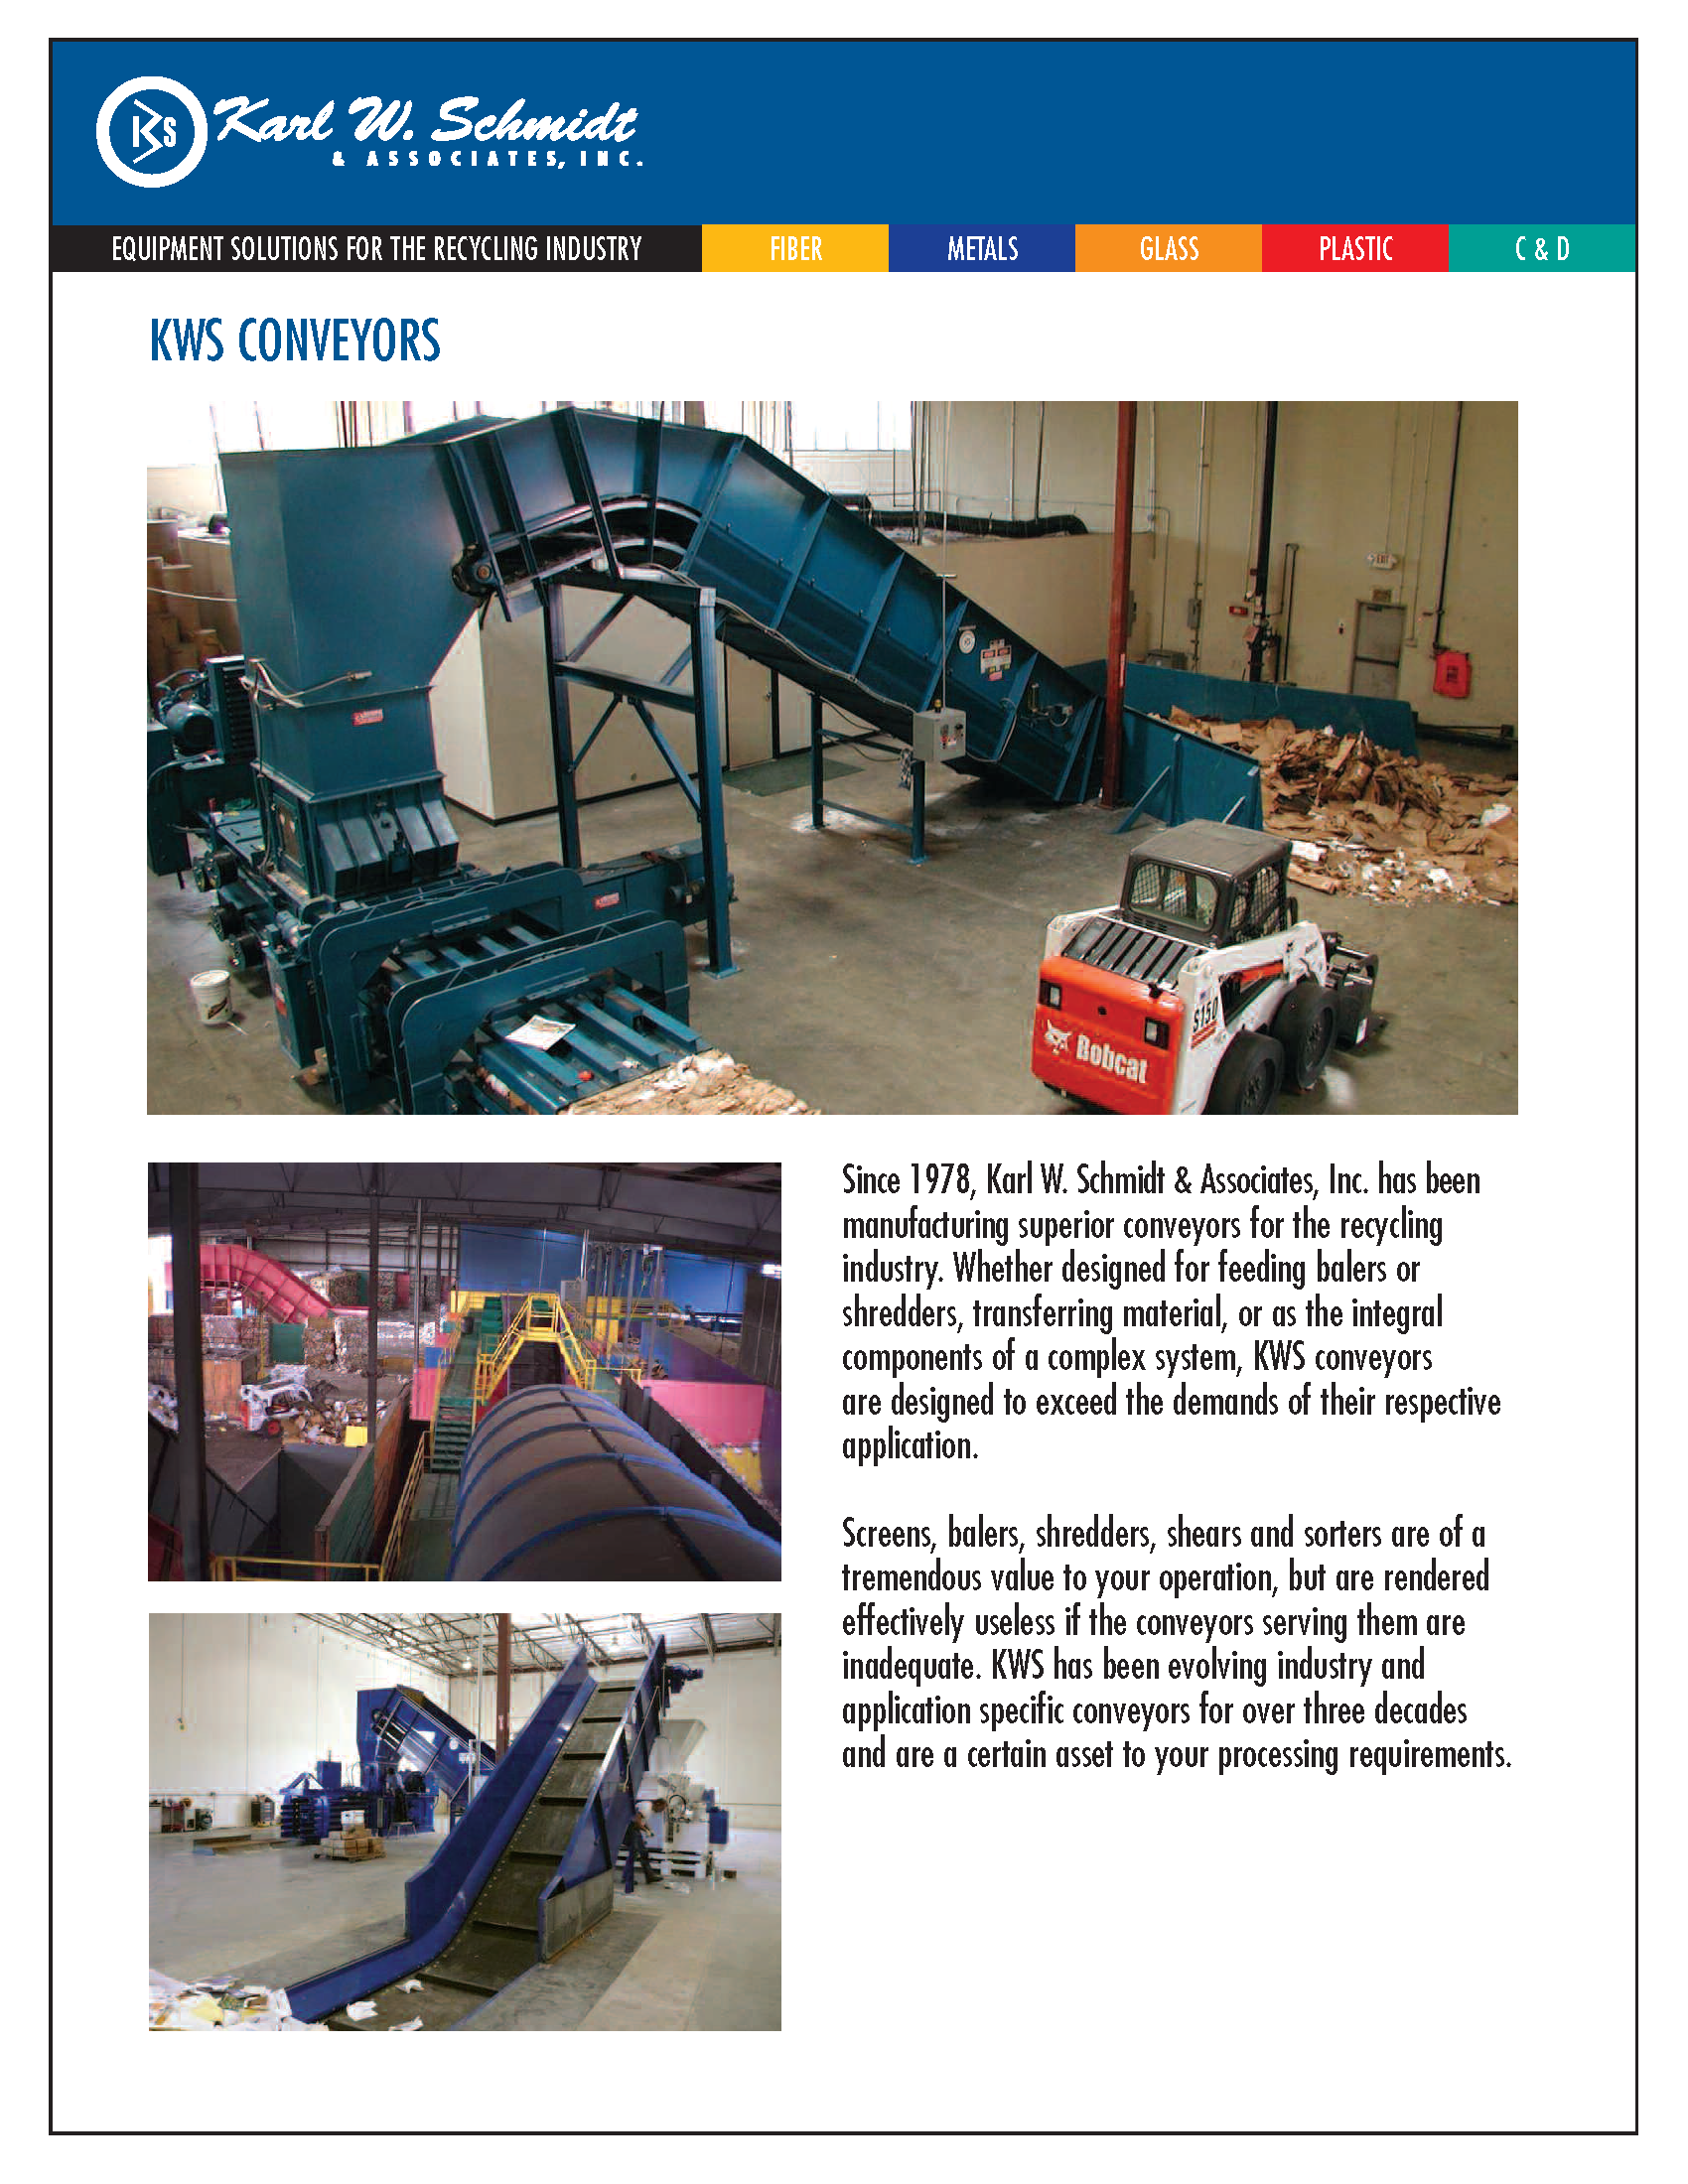 See the array of conveying solutions by Karl W. Schmidt